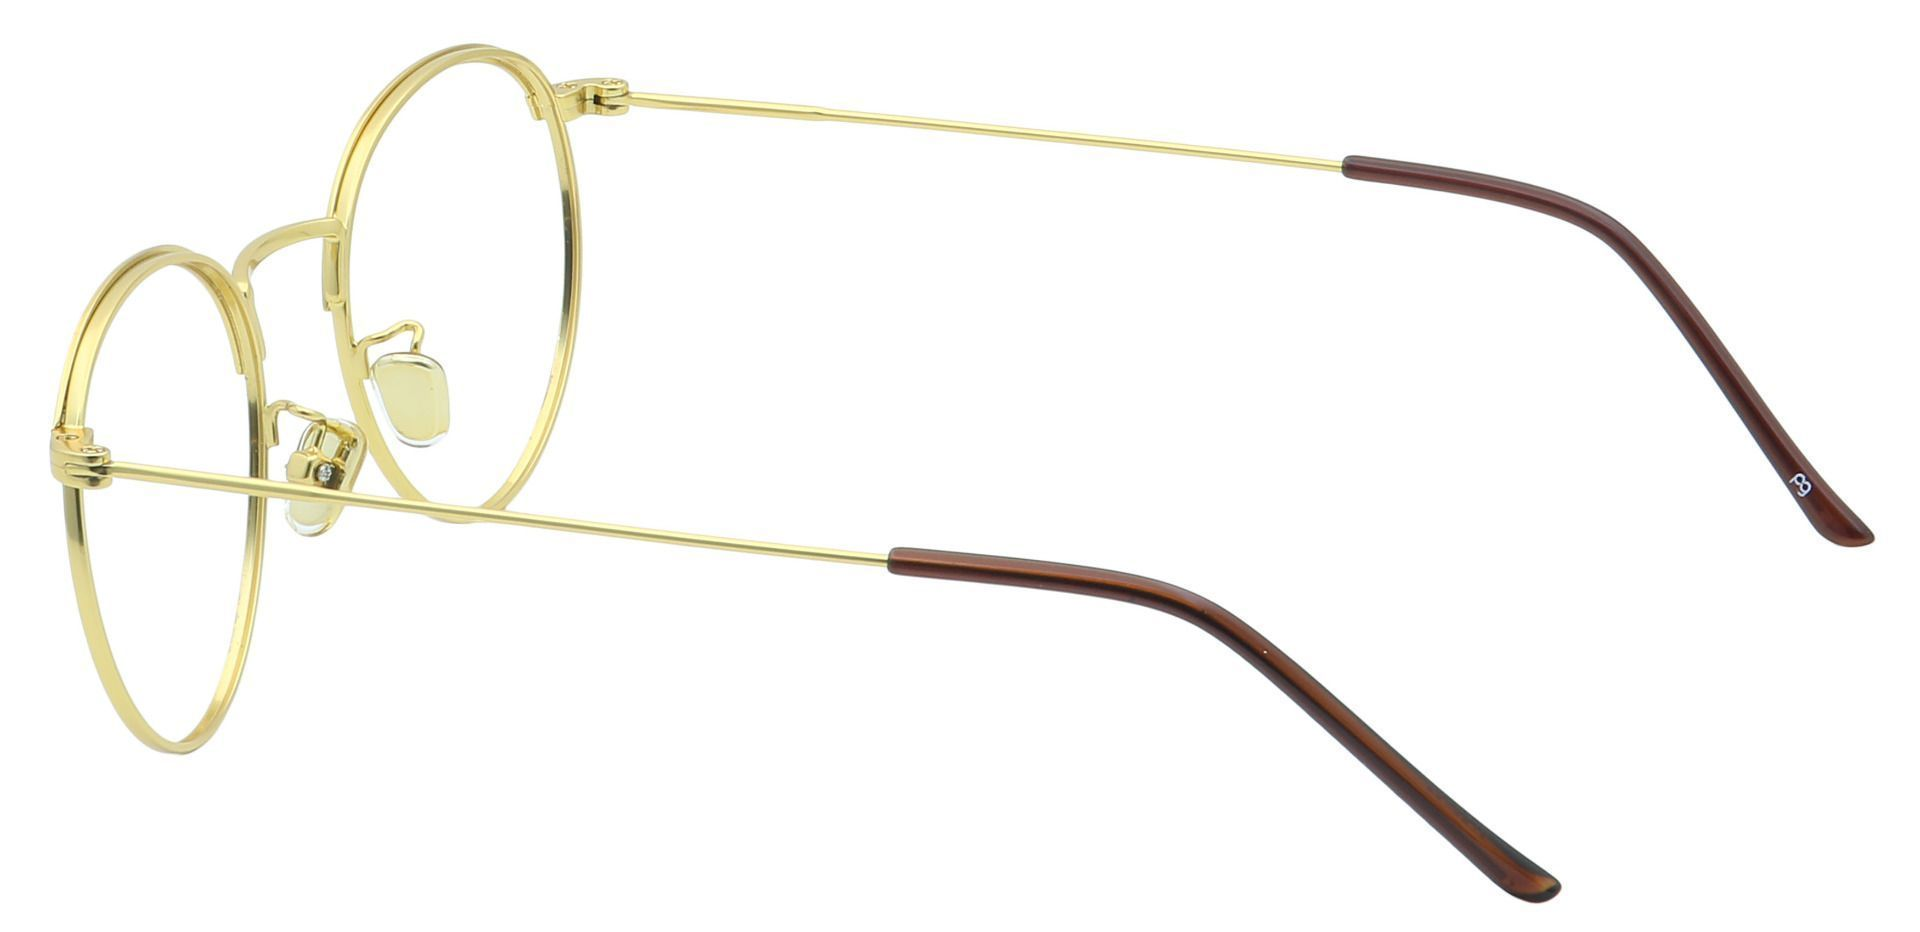 Cooper Oval Lined Bifocal Glasses - Yellow